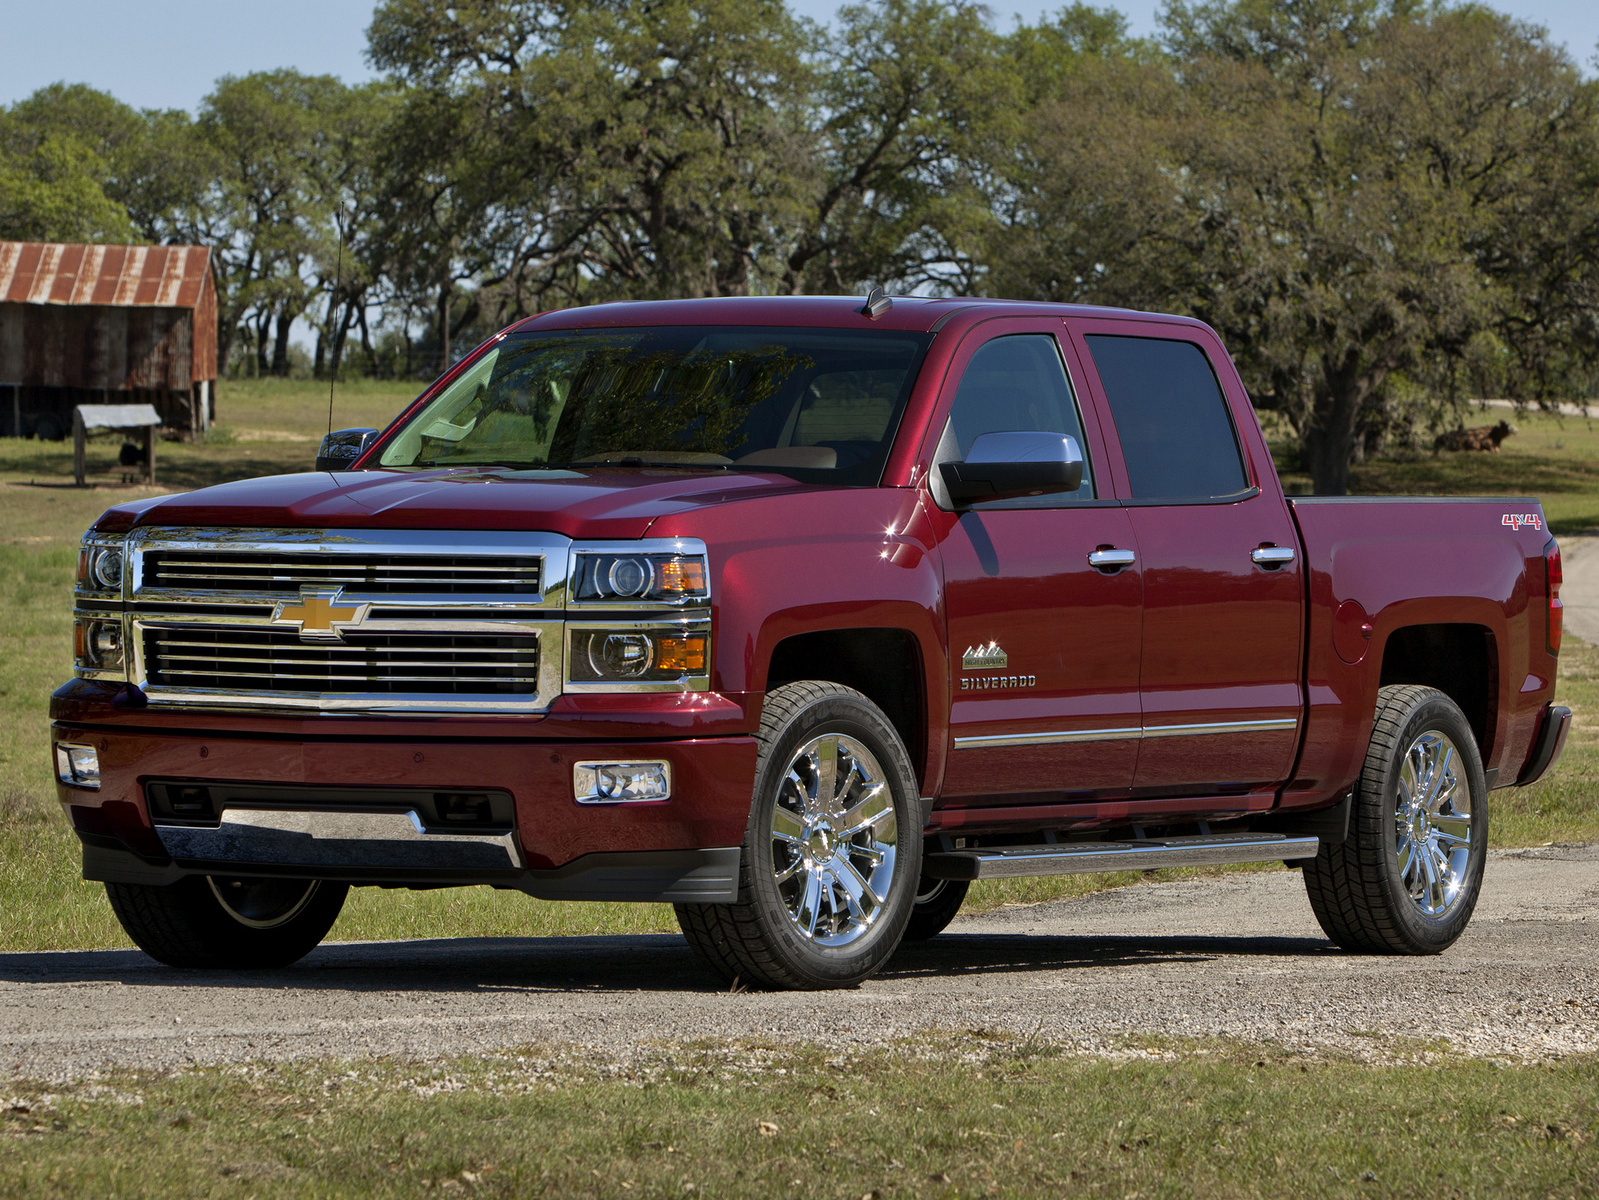 new 2014 2015 chevrolet silverado 1500 for sale cincinnati oh cargurus. Black Bedroom Furniture Sets. Home Design Ideas